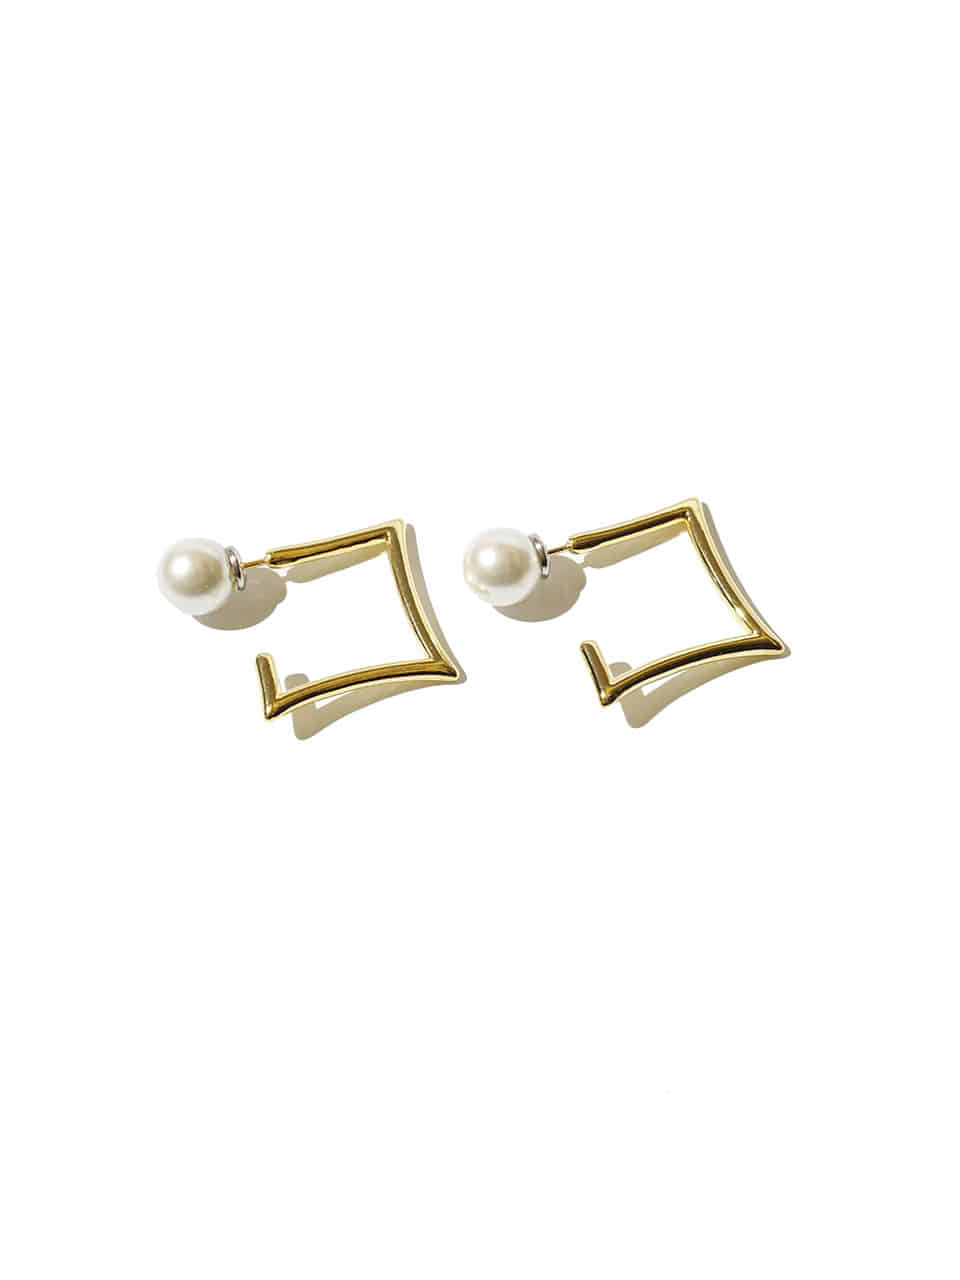 Edge square earrings